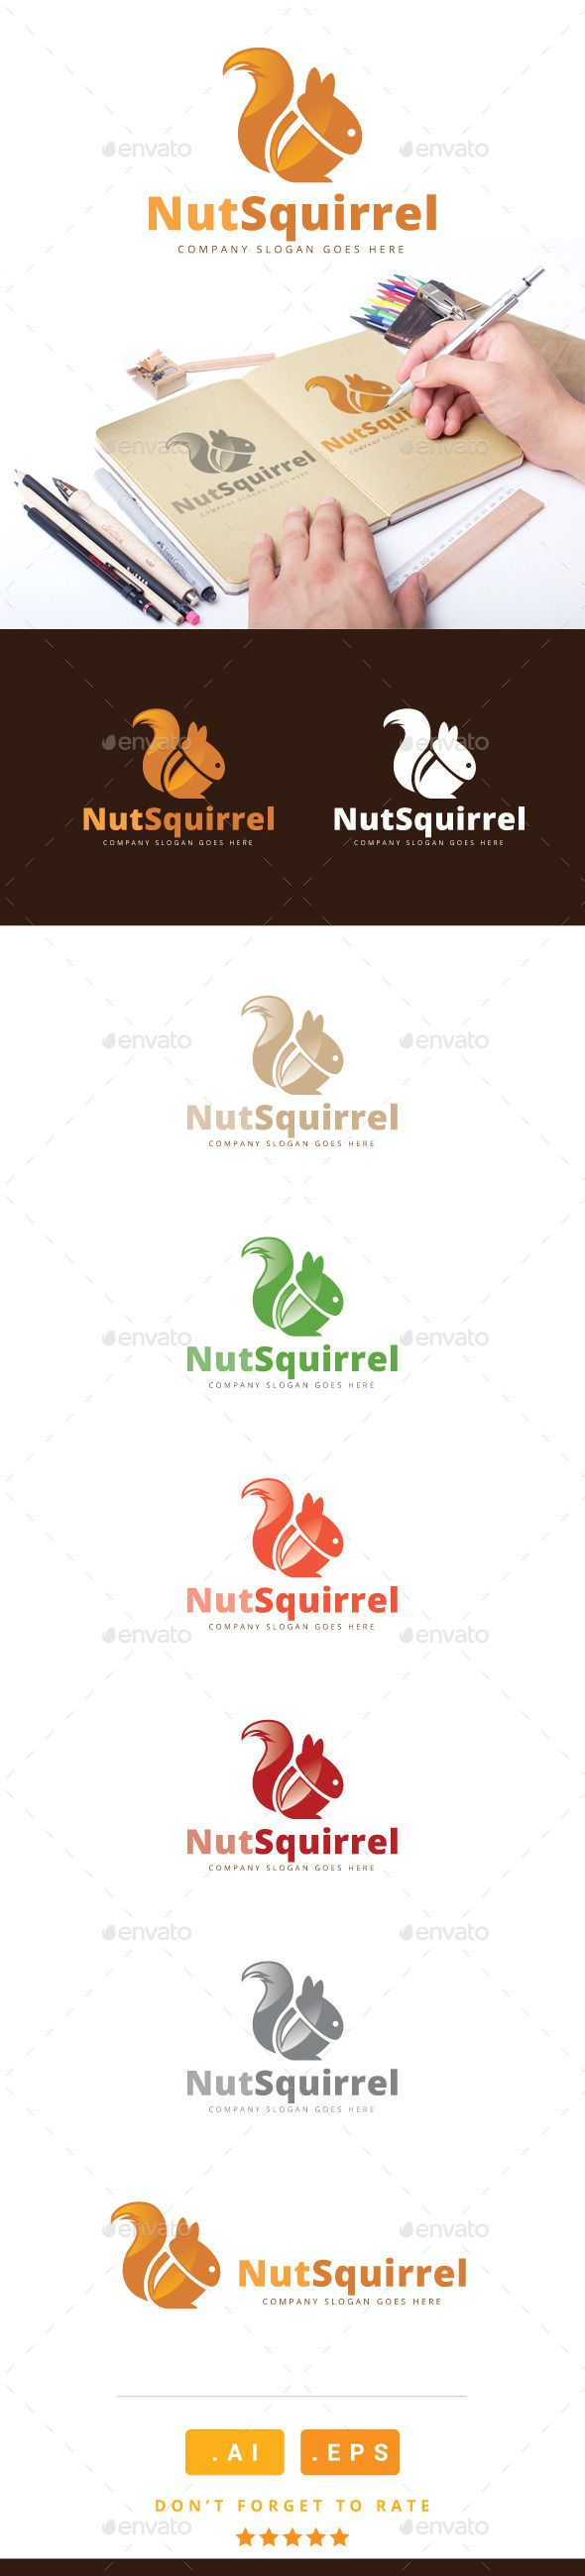 Nut Squirrel Logo — Vector EPS #food #colors squirrel • Available here → https://graphicriver.net/item/nut-squirrel-logo/11095784?ref=pxcr